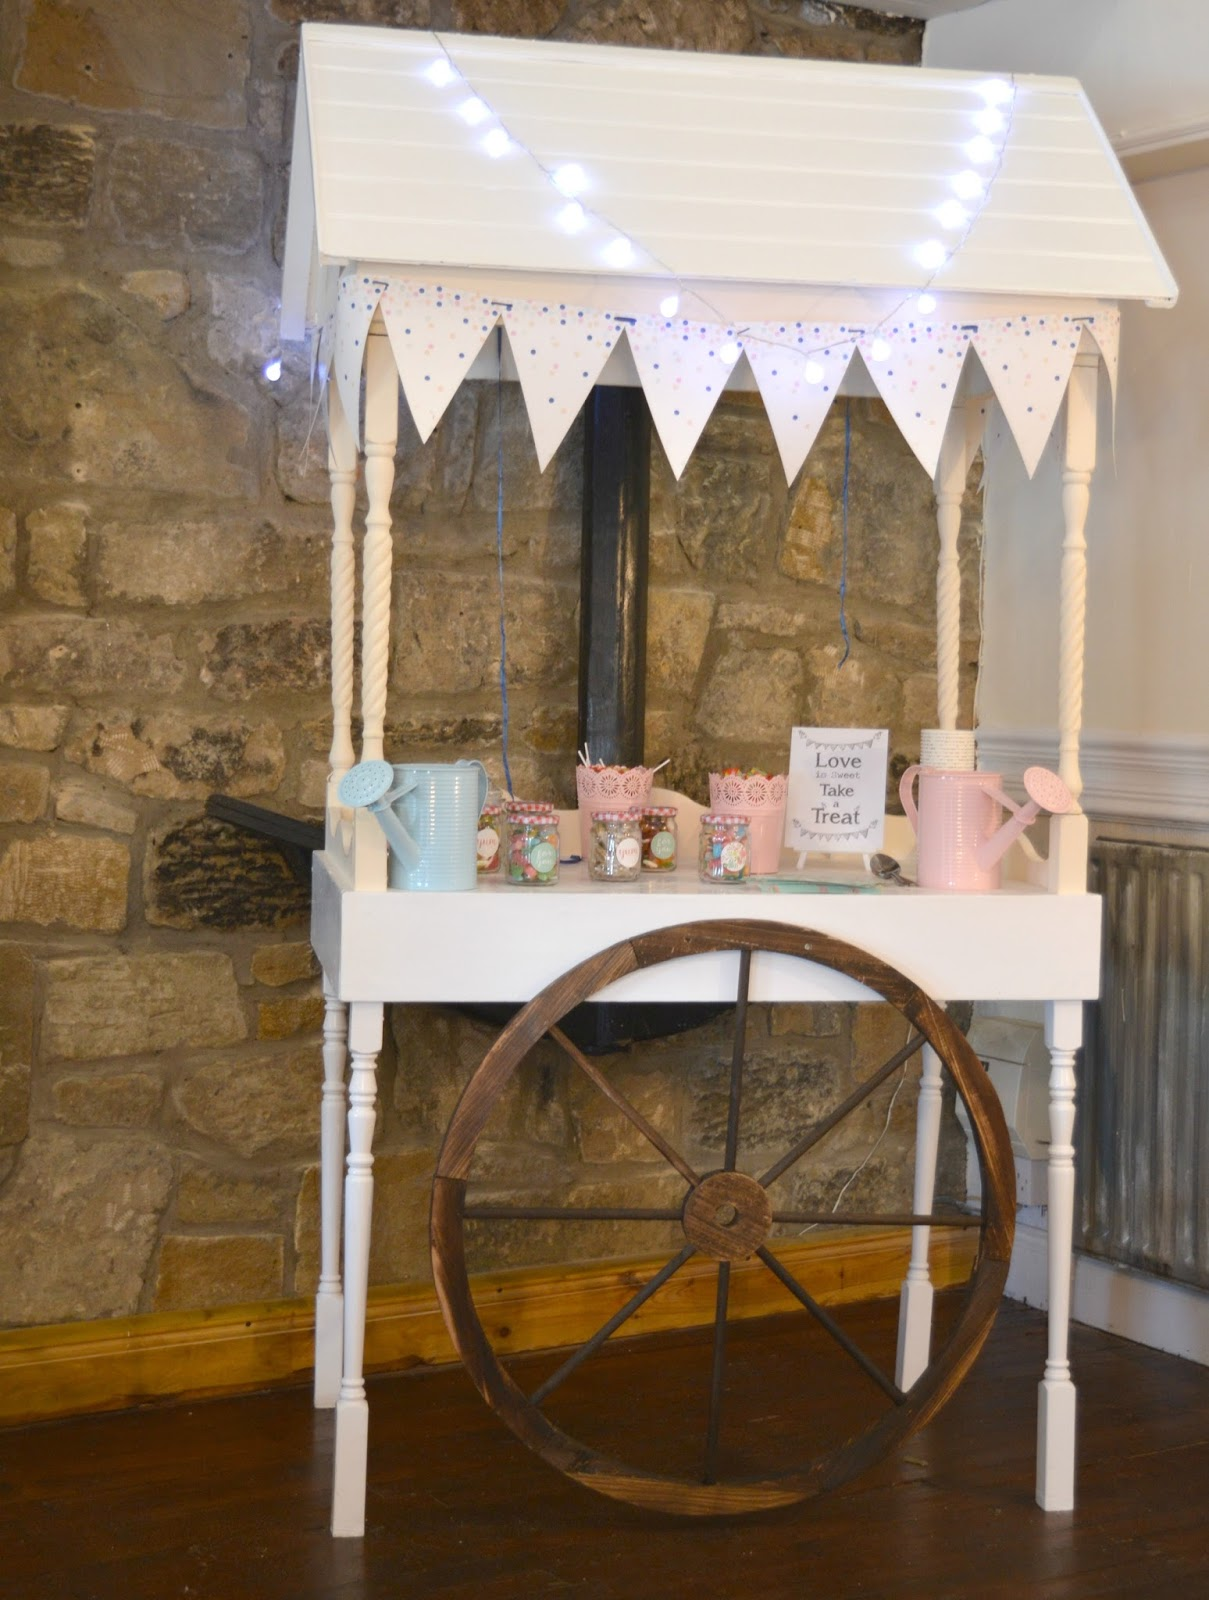 Weddings at Webster's Ropery, Sunderland: A North East Wedding Venue Sweet Cart